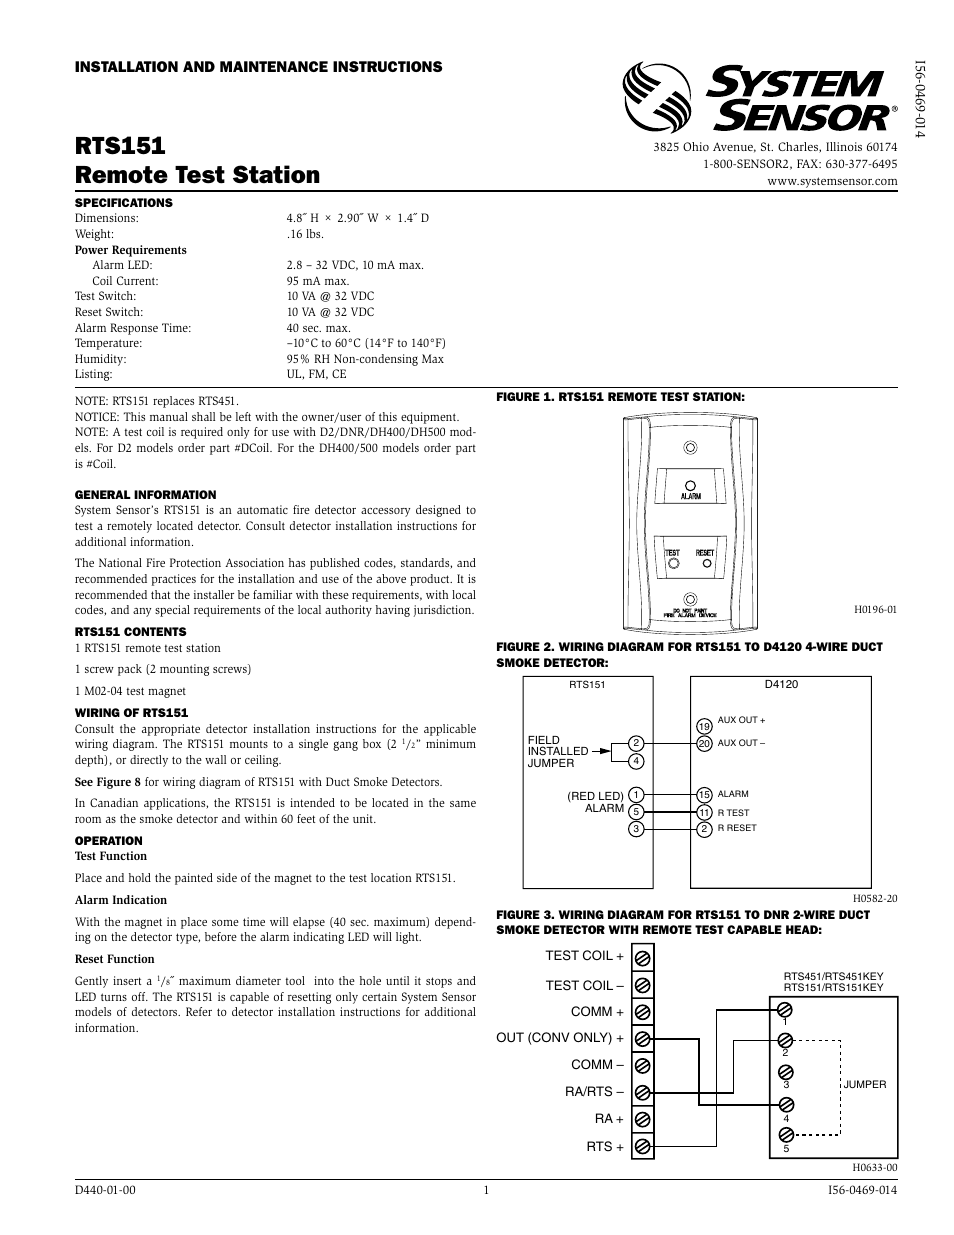 system sensor rts151 page1 system sensor rts151 user manual 2 pages 5R55E Transmission Wiring Diagram at bayanpartner.co